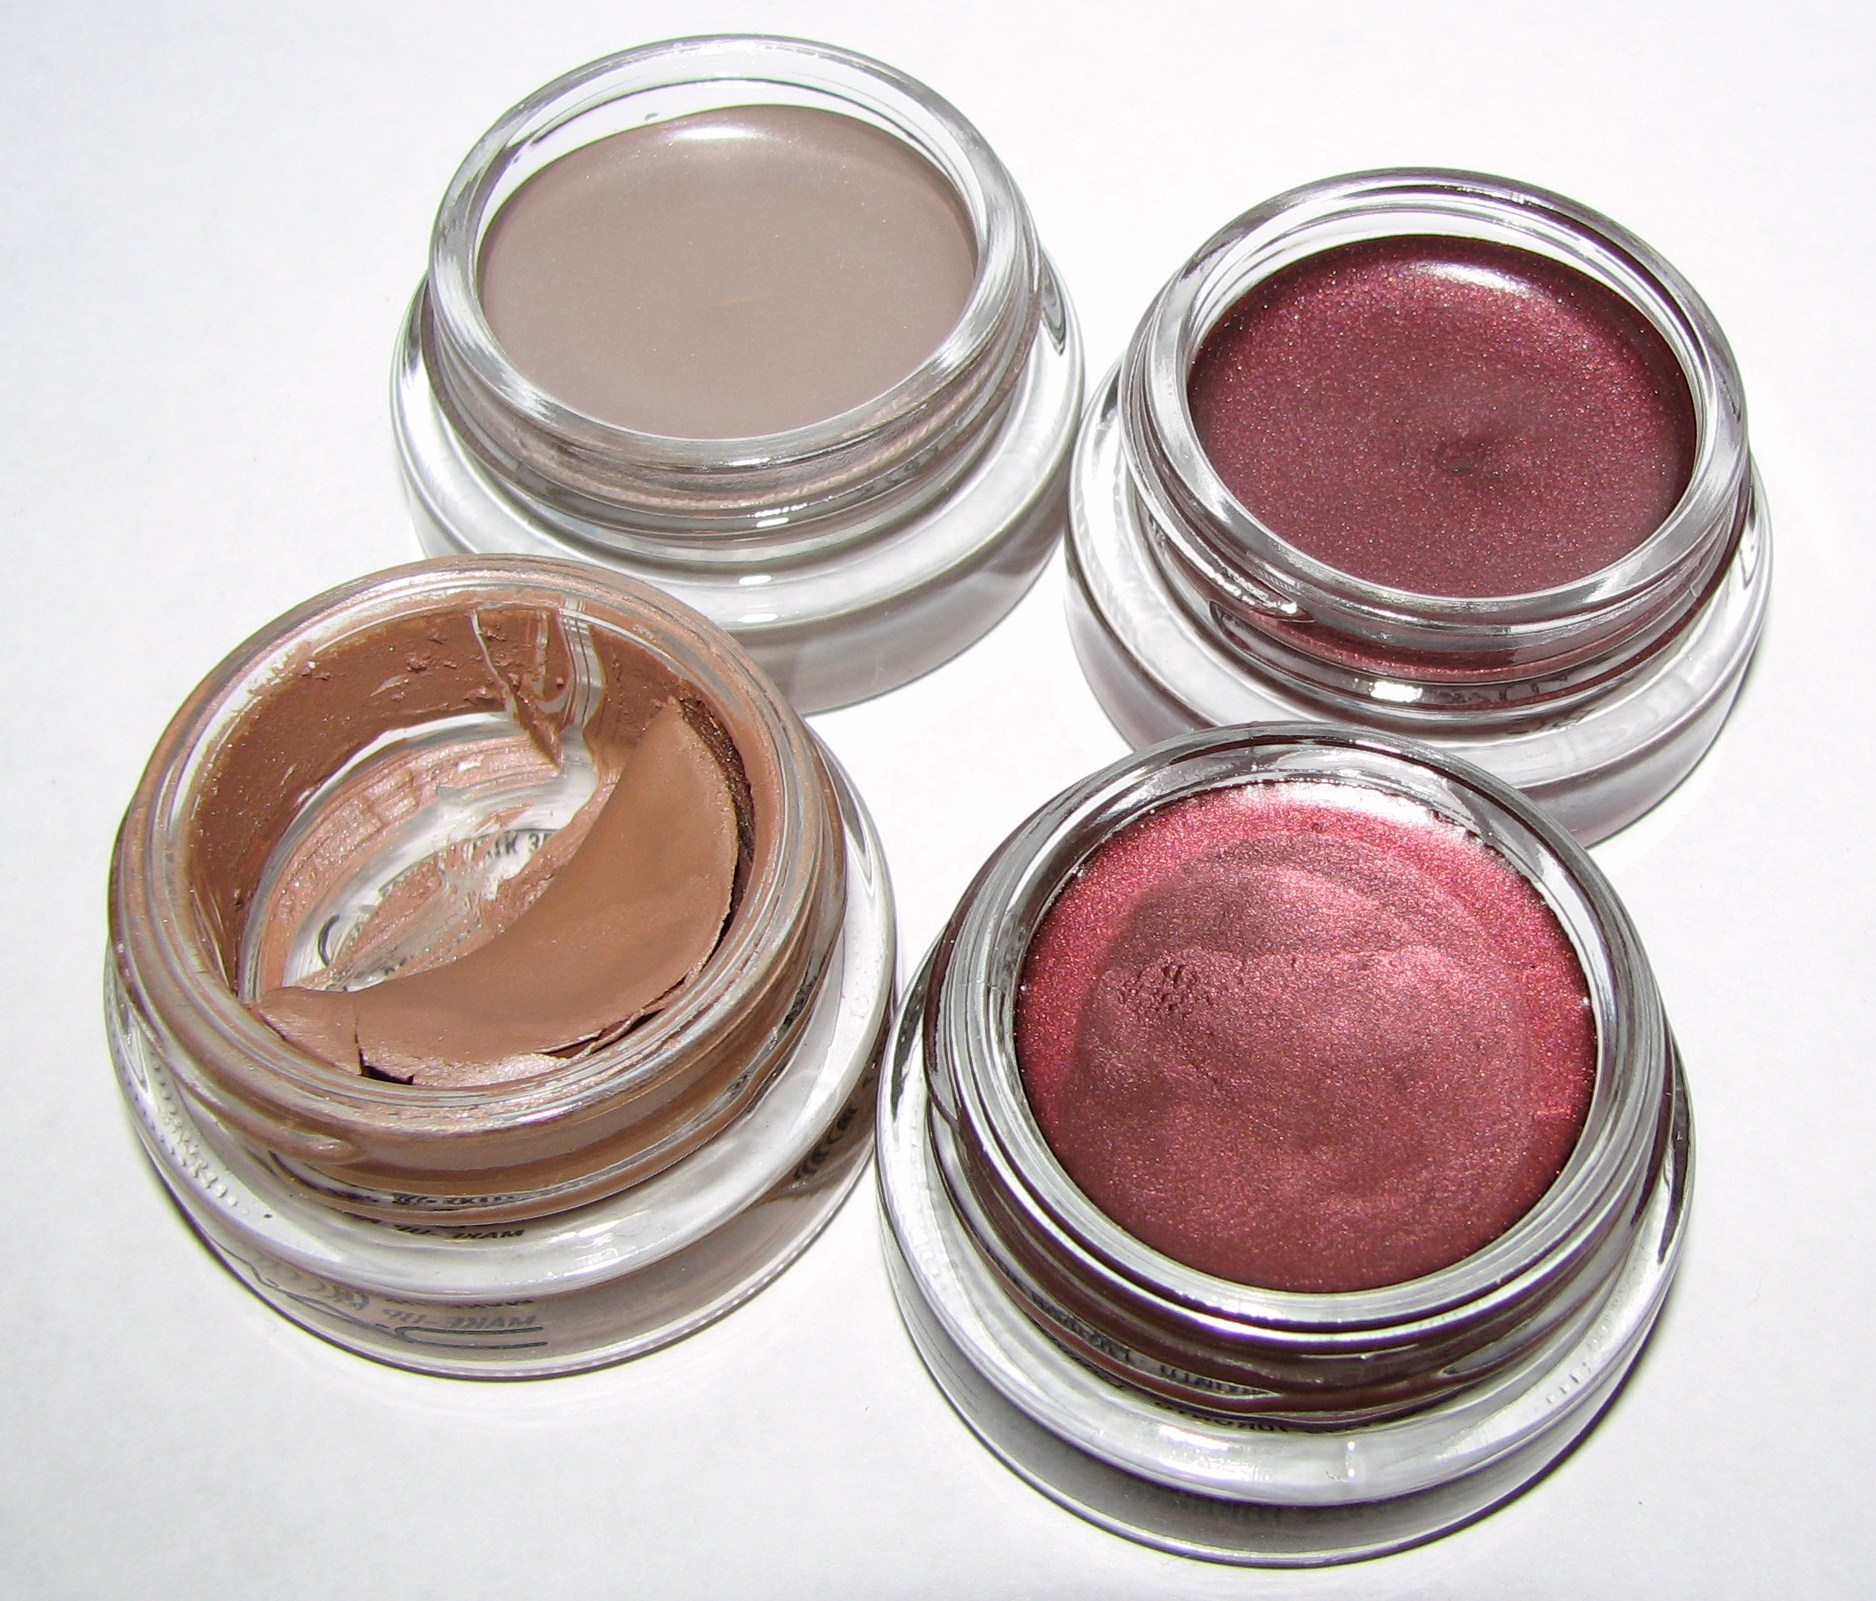 Maybelline TOUGH AS TAUPE and POMEGRANATE PUNK Eye Studio Color ...